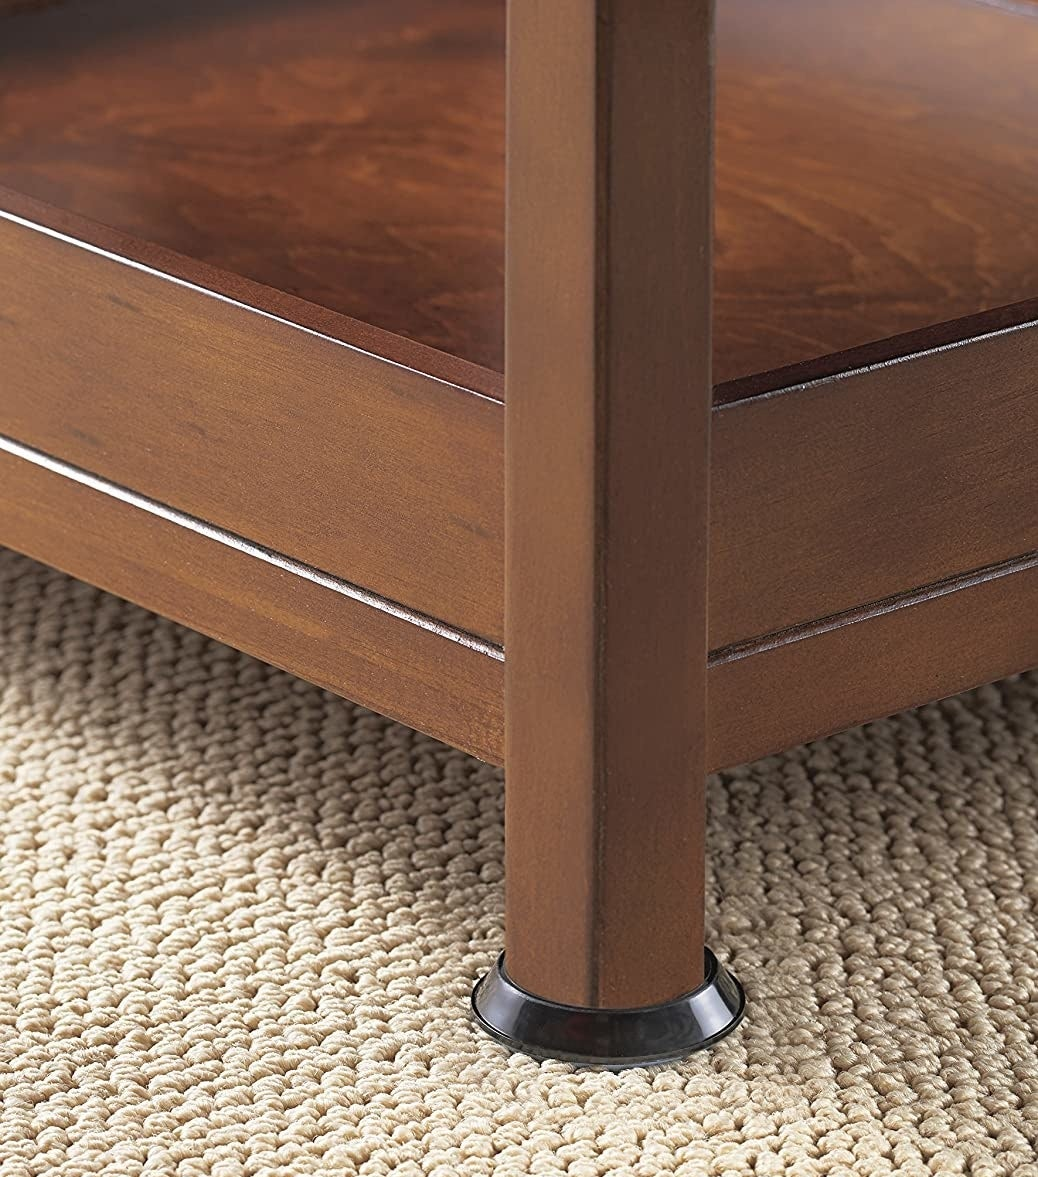 The sliders on the bottom of a table leg